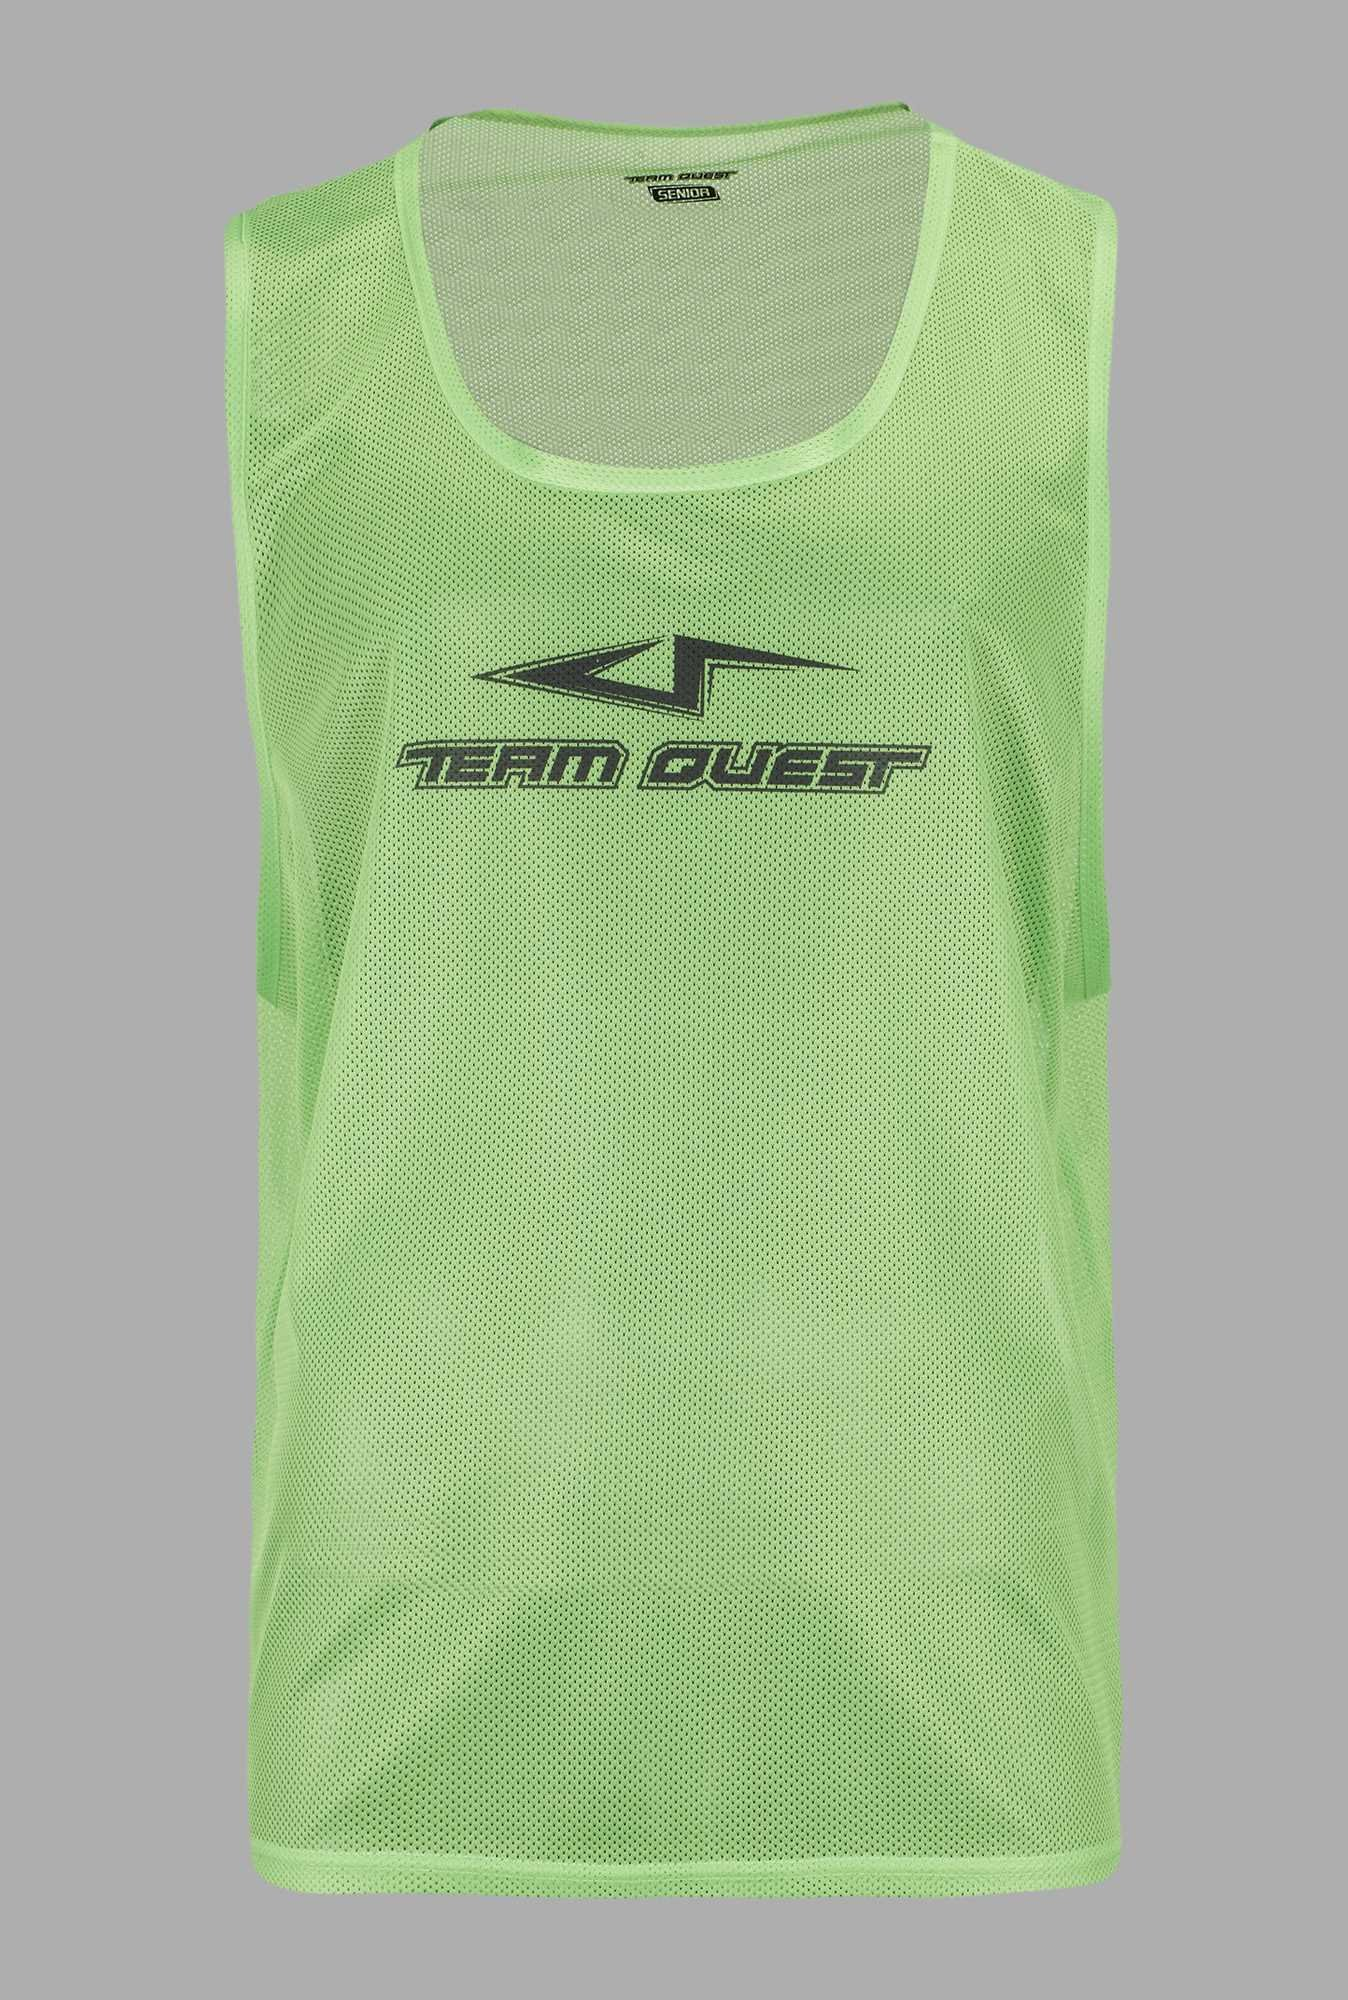 Team Quest Lime U Neck Football Vest